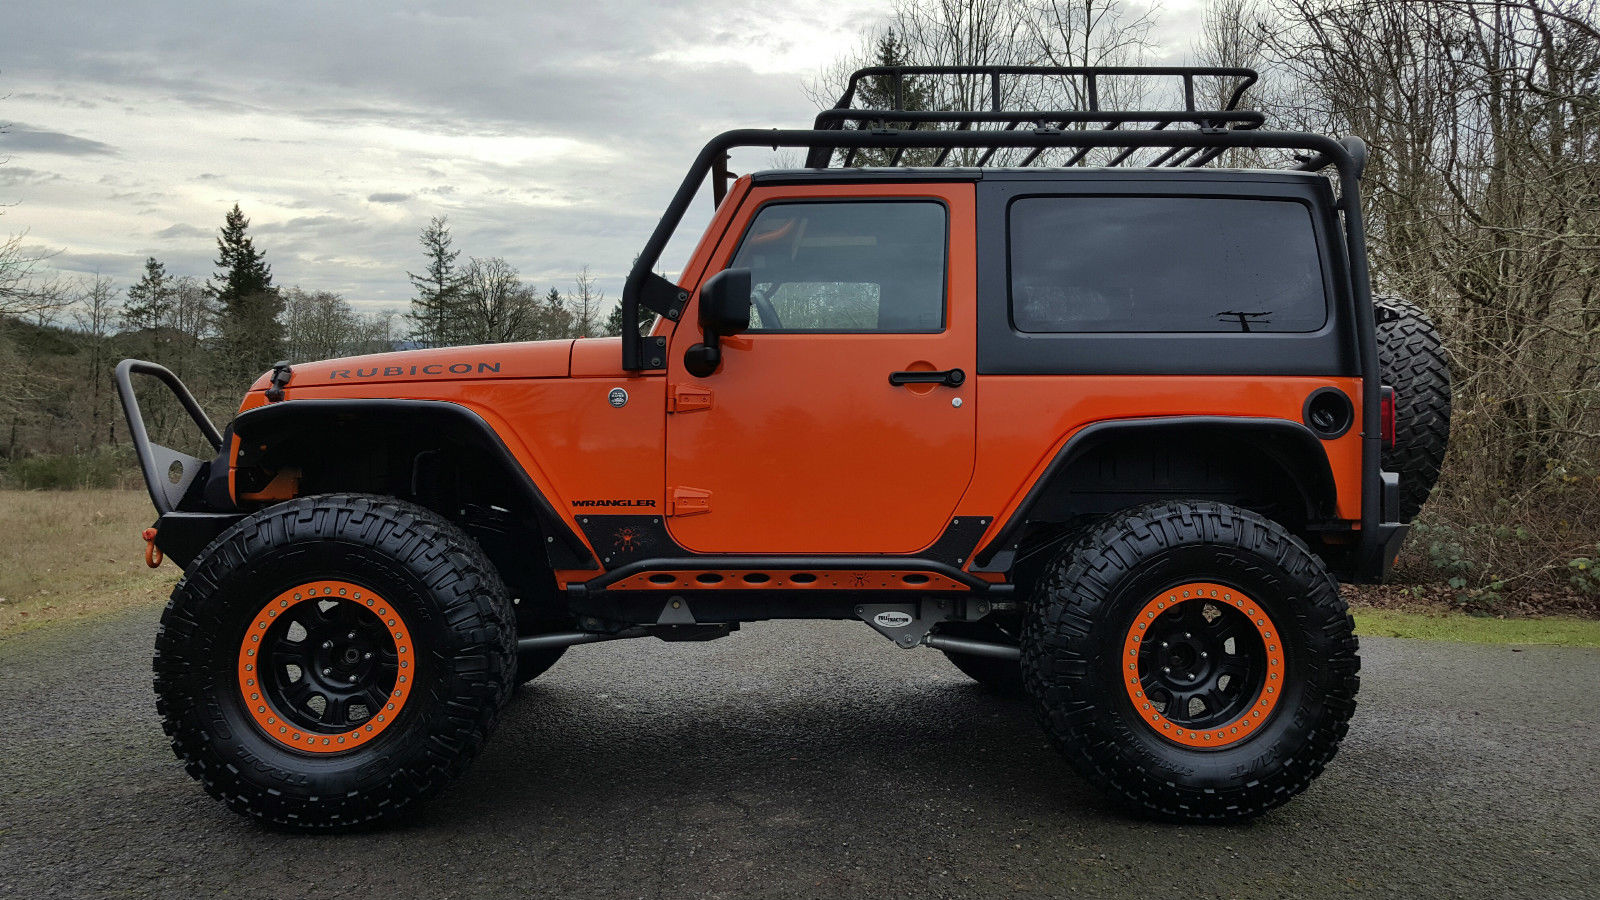 2013 jeep wrangler rubicon lifted for sale. Black Bedroom Furniture Sets. Home Design Ideas